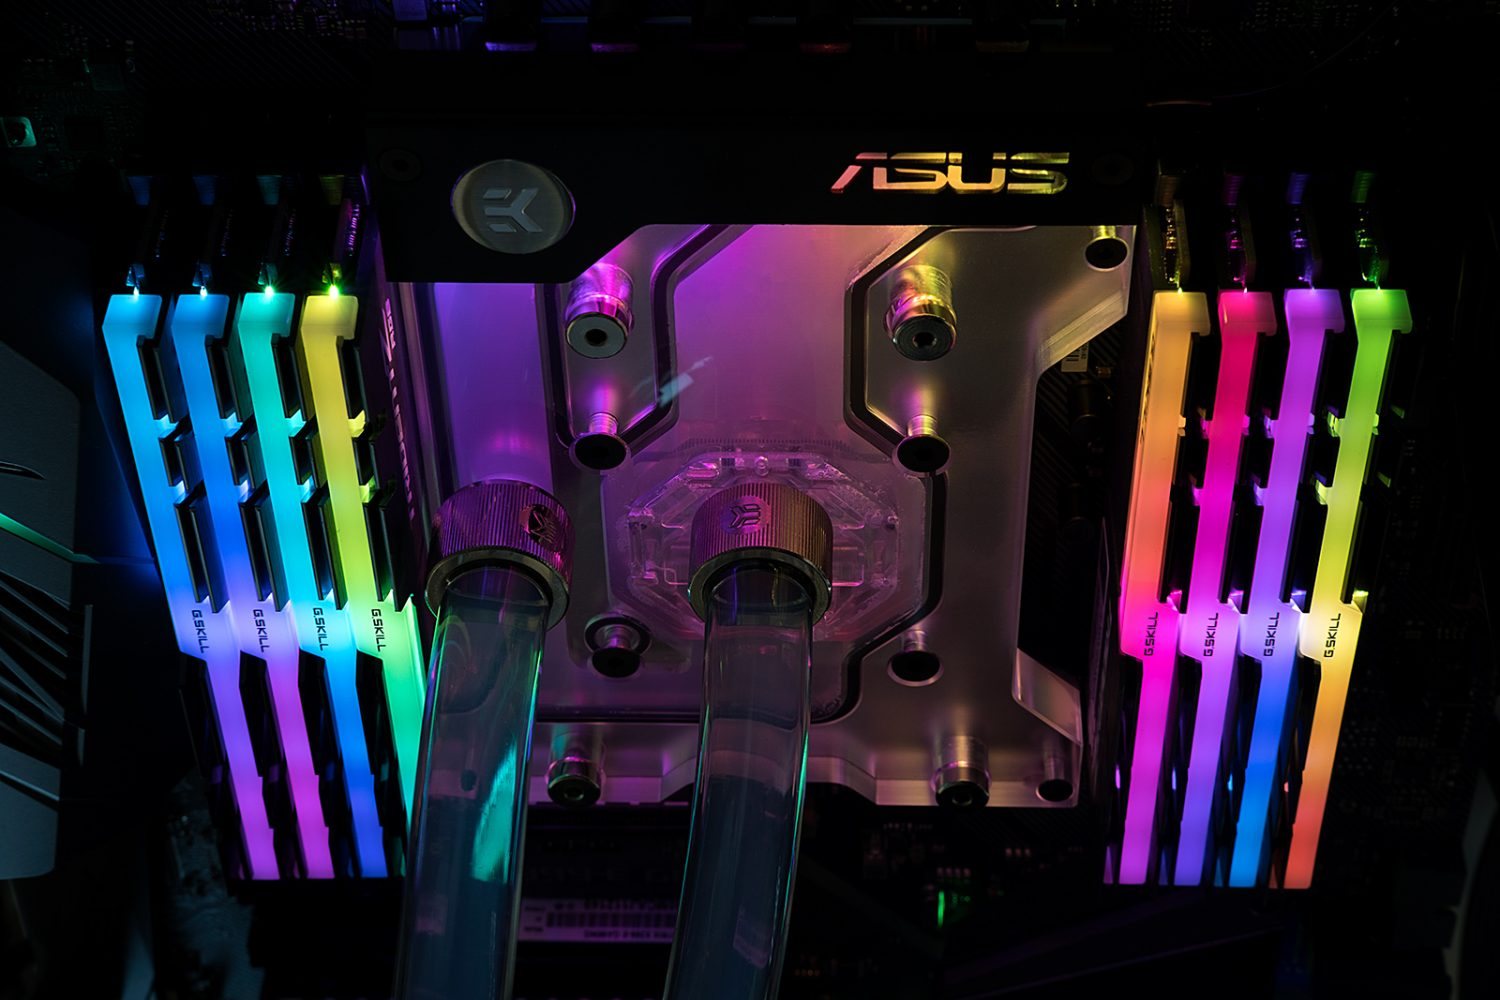 EKWB Outs RGB Monoblock for ASUS X399 Motherboards